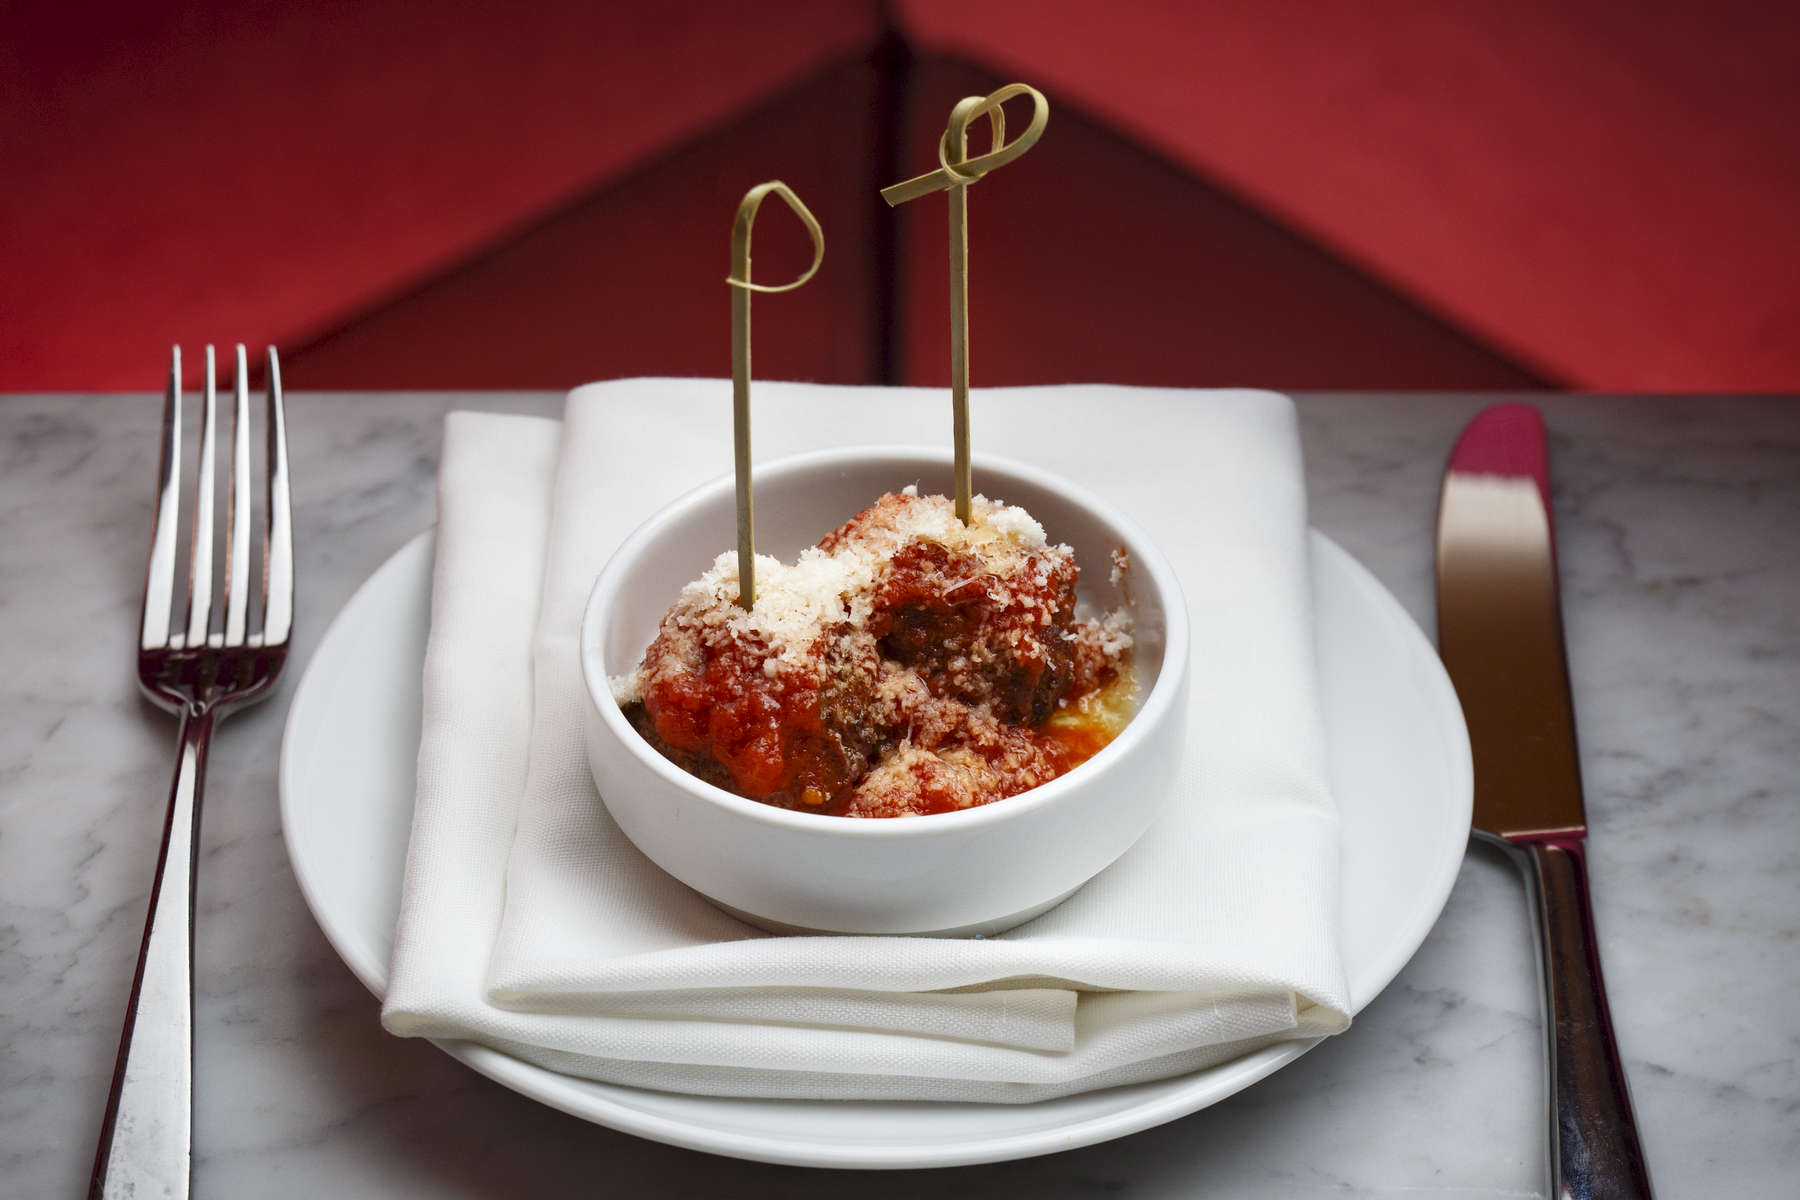 1/26/2016 - Boston, MA - This is the polpette, cq, $4, at SRV Restaurant. SRV Restaurant in Boston's South End is a {quote}Venetian inspired Bacaro{quote} according to their website. Topic: QuickBite(pic). Story by Kara Baskin/Globe Staff. Photo by Dina Rudick/Globe Staff.